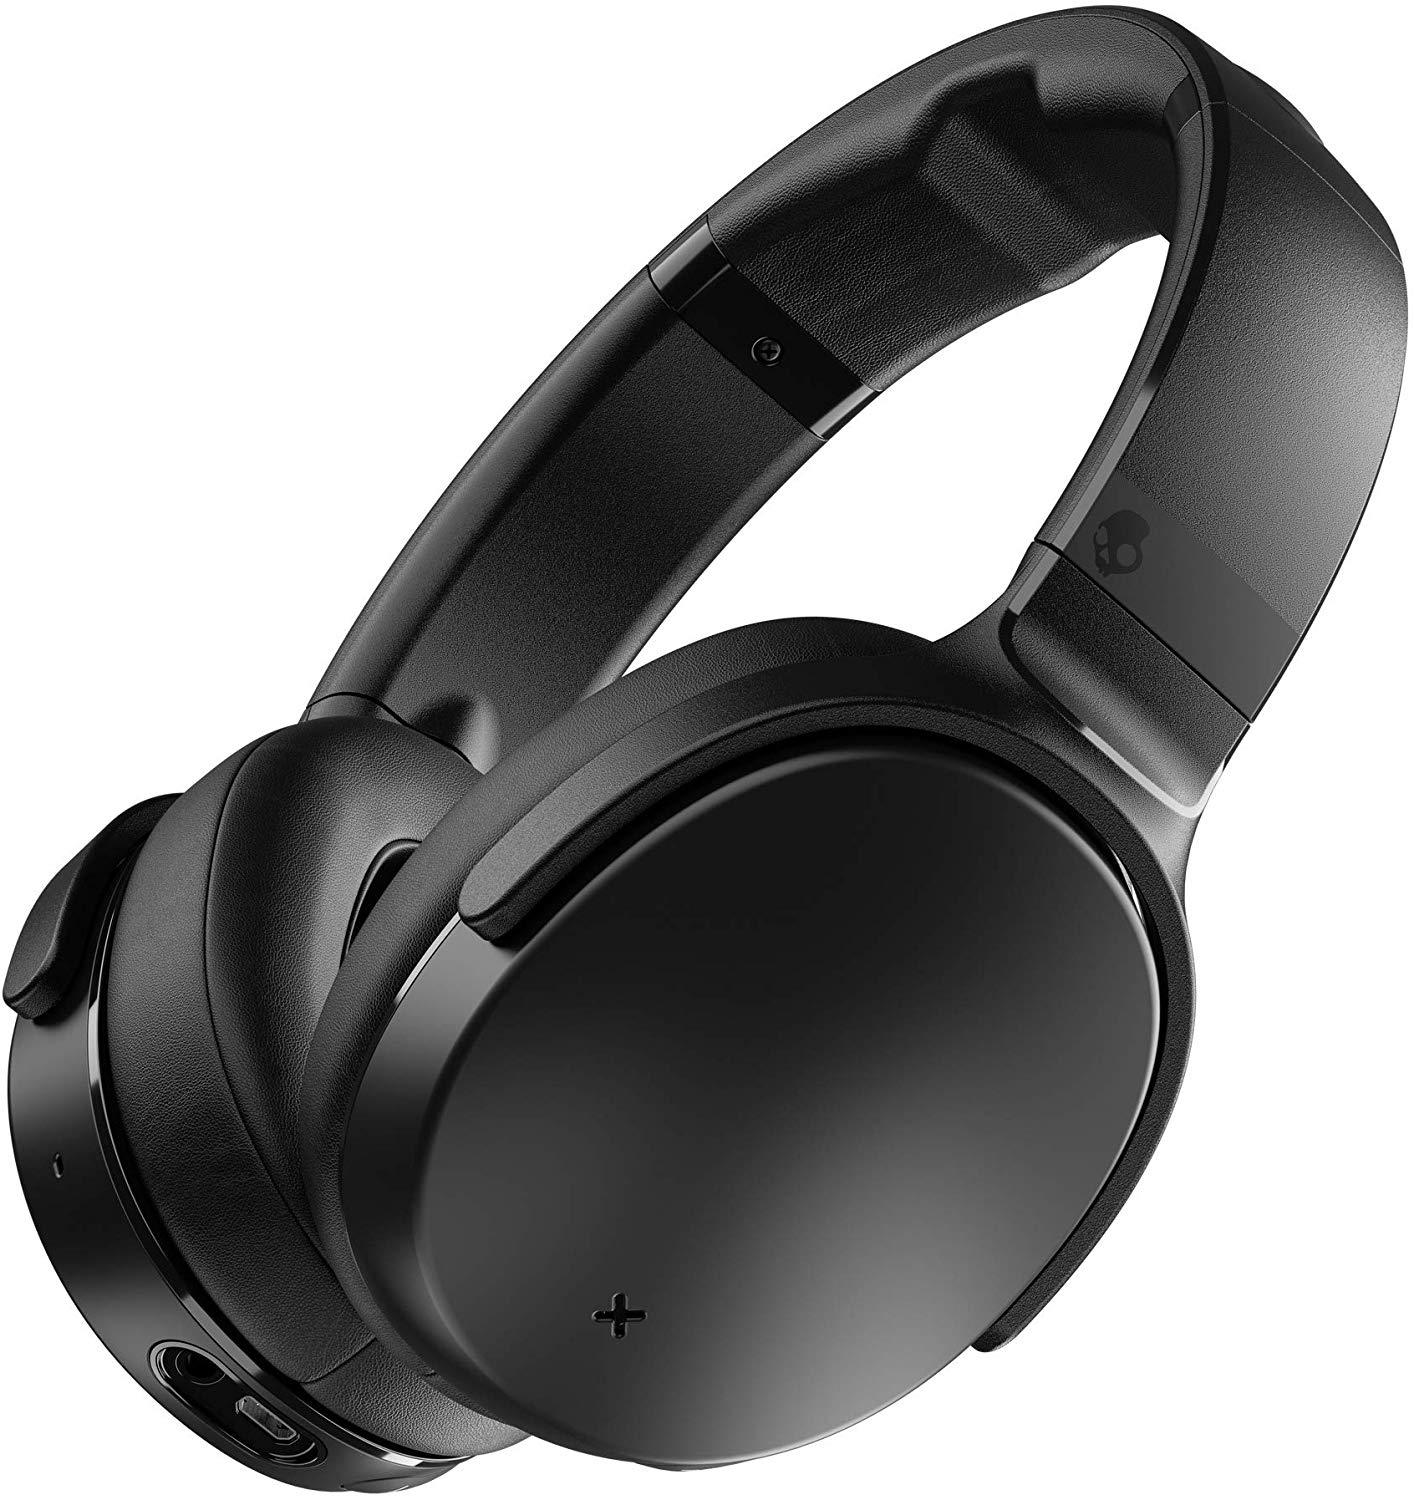 Skullcandy Venu Noise Canceling Wireless Headphones Audio & Video Skullcandy